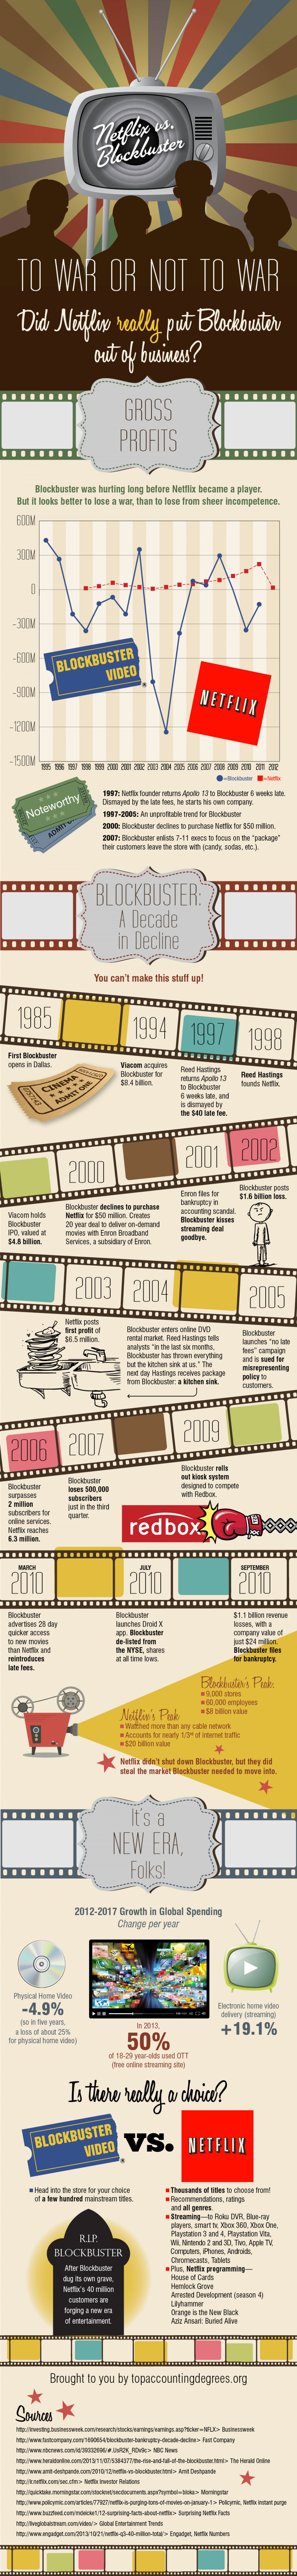 Netflix vs. Blockbuster Infographic